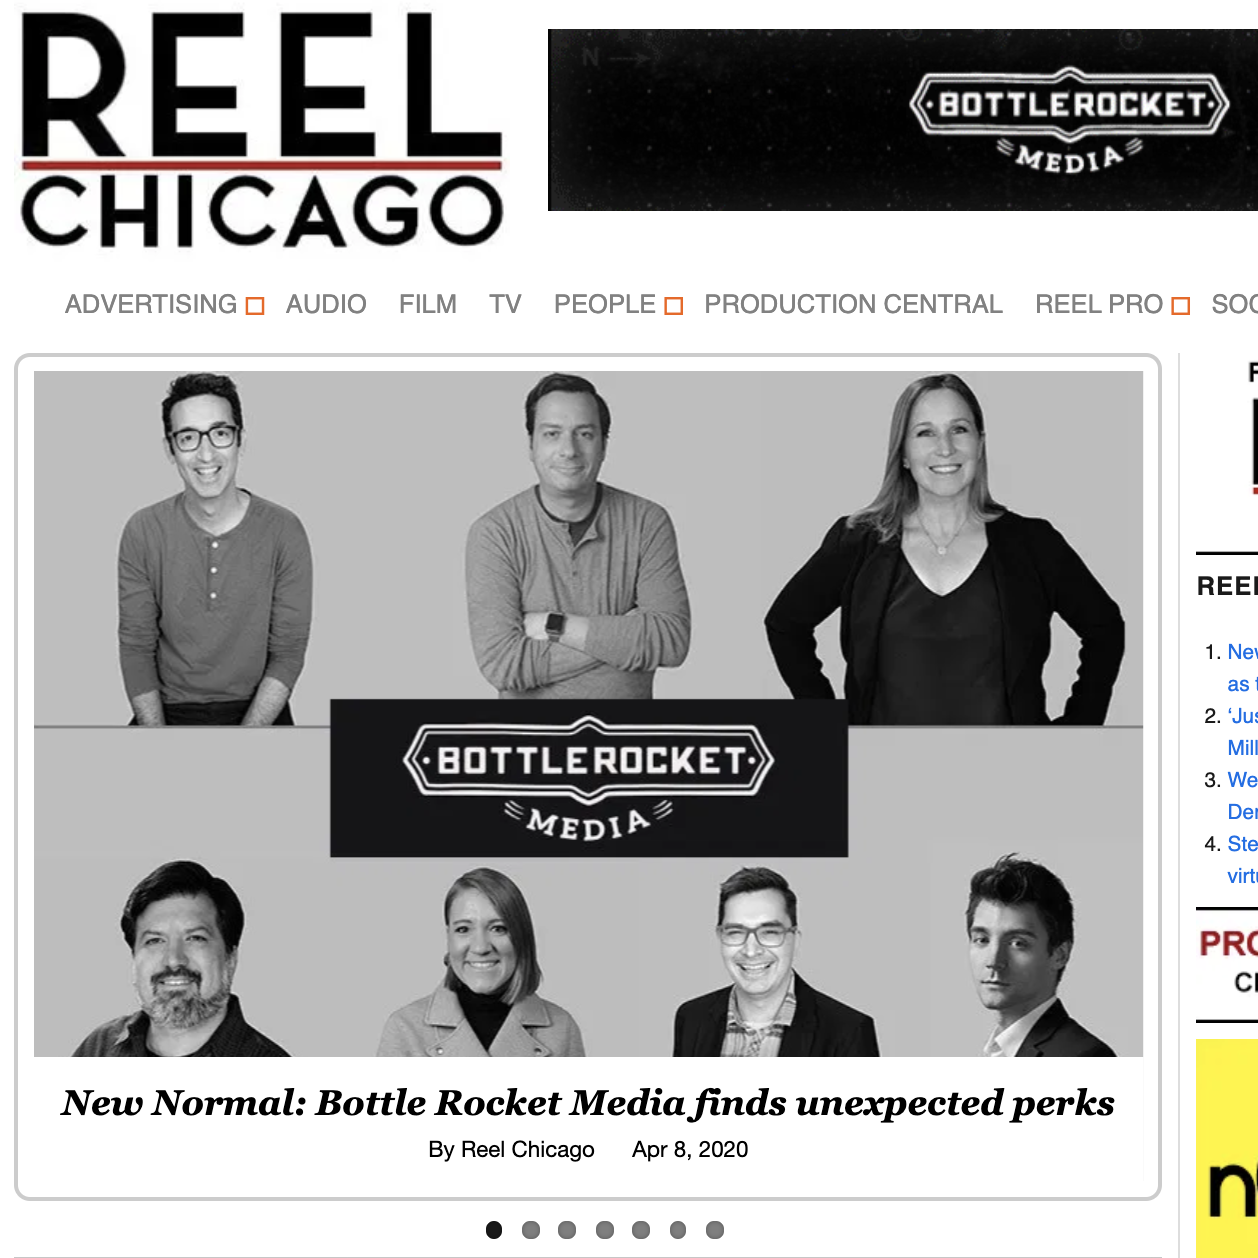 REEL Chicago – The New Normal: Bottle Rocket Media Finds Unexpected Perks